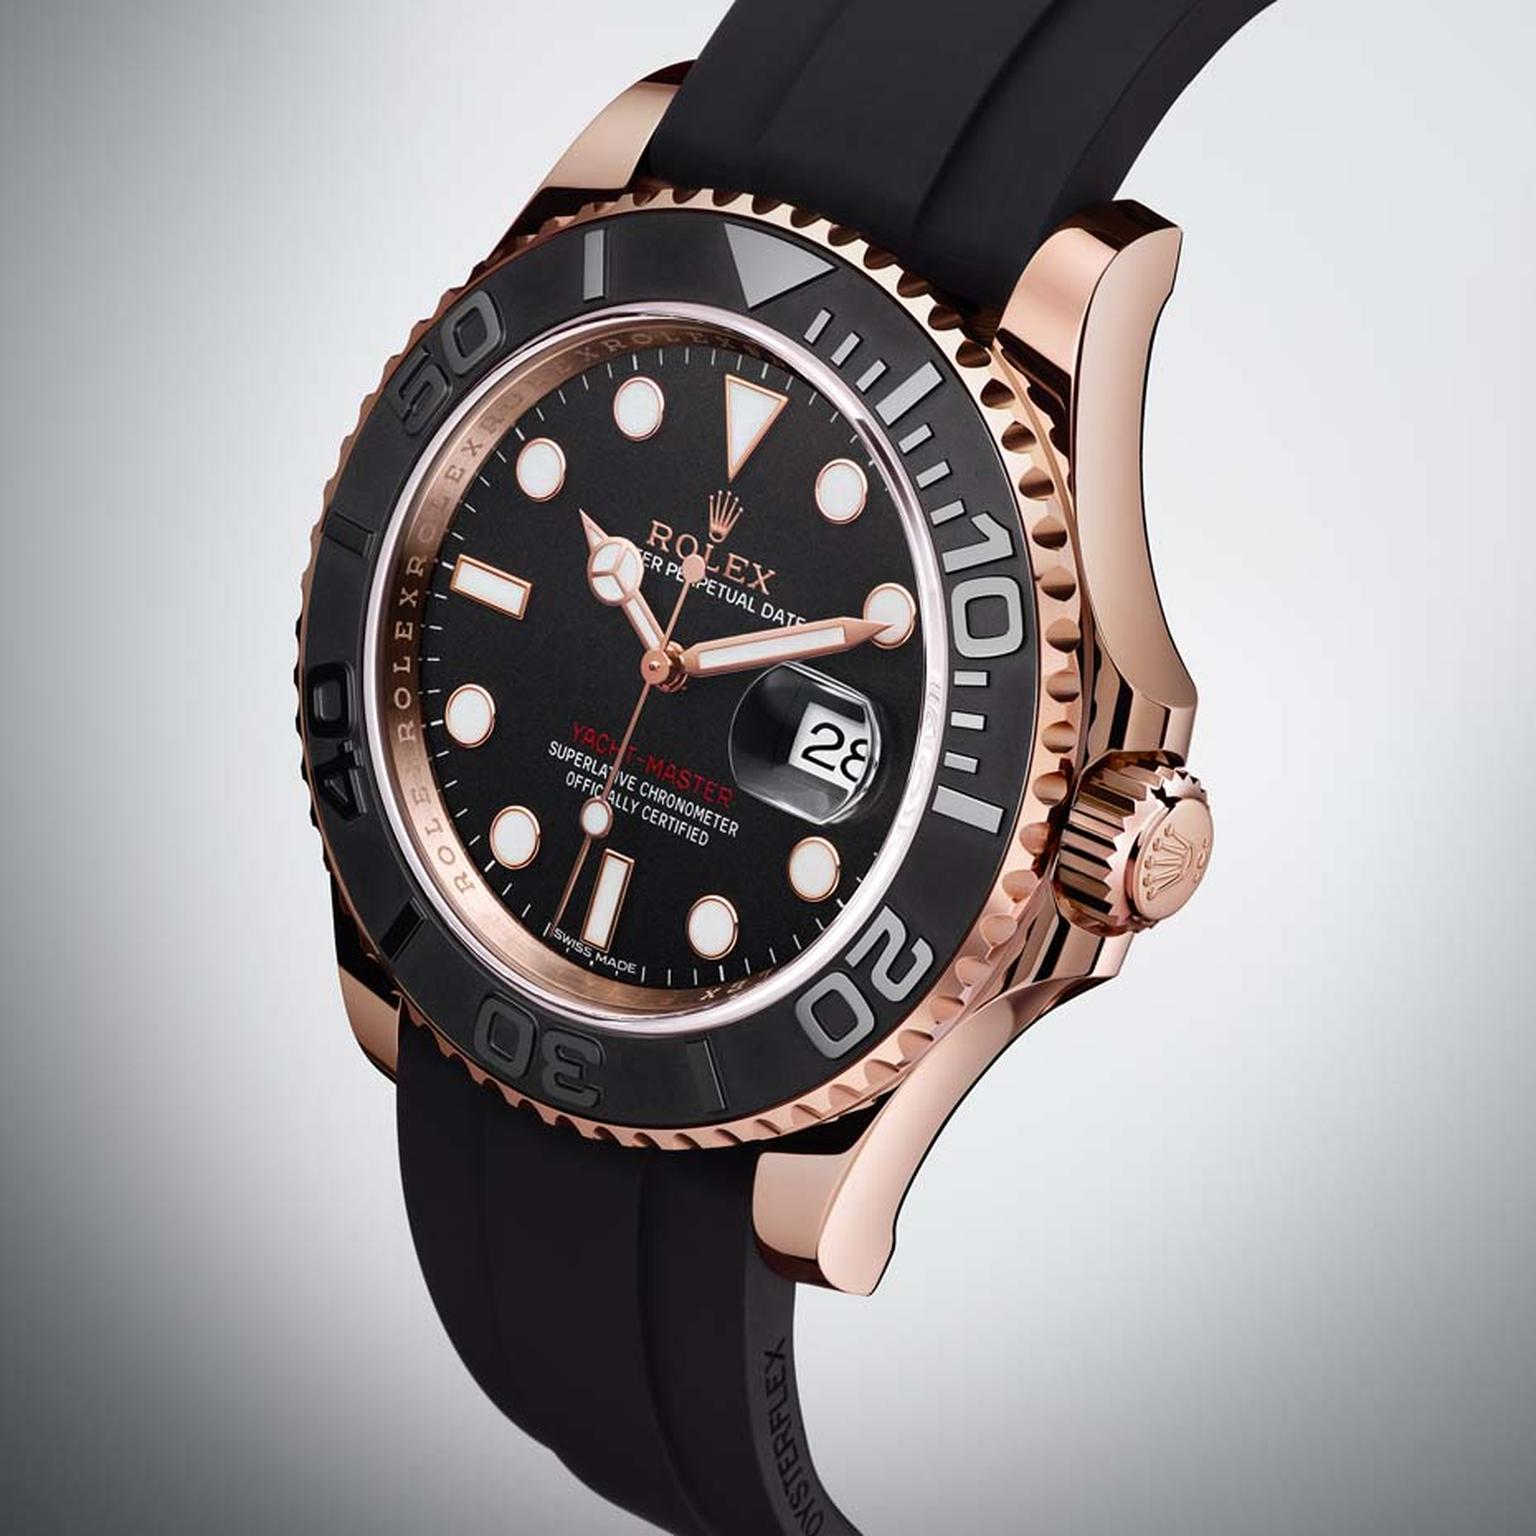 Rolex's new Yacht-Master in a 40mm Everose gold case boasts a new Cerachrom insert in black ceramic fitted in the rotating bezel on the dial. The raised and polished numerals stand out clearly against the matte black ceramic and are designed to measure el